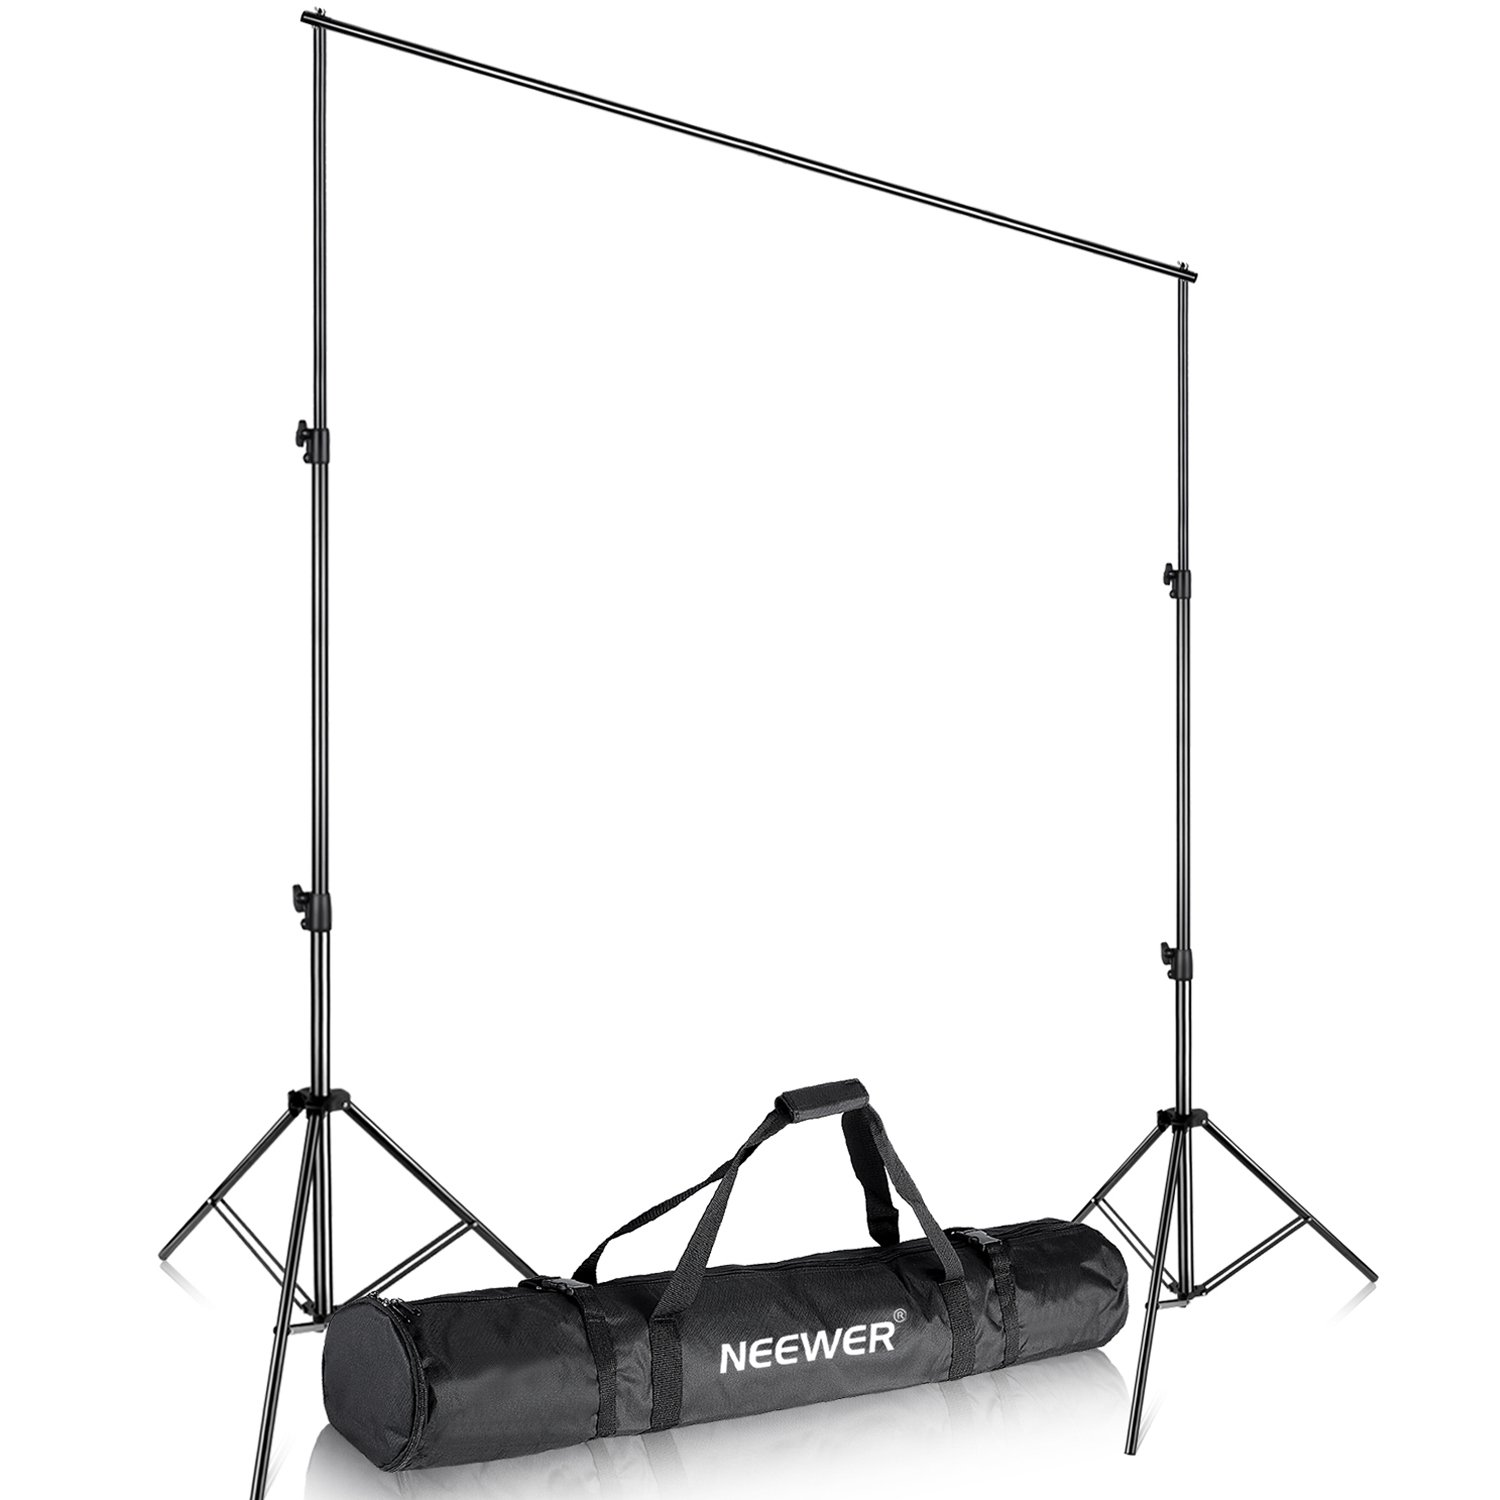 Neewer Pro 10x12 feet/3x3.6 Meters Heavy Duty Adjustable...